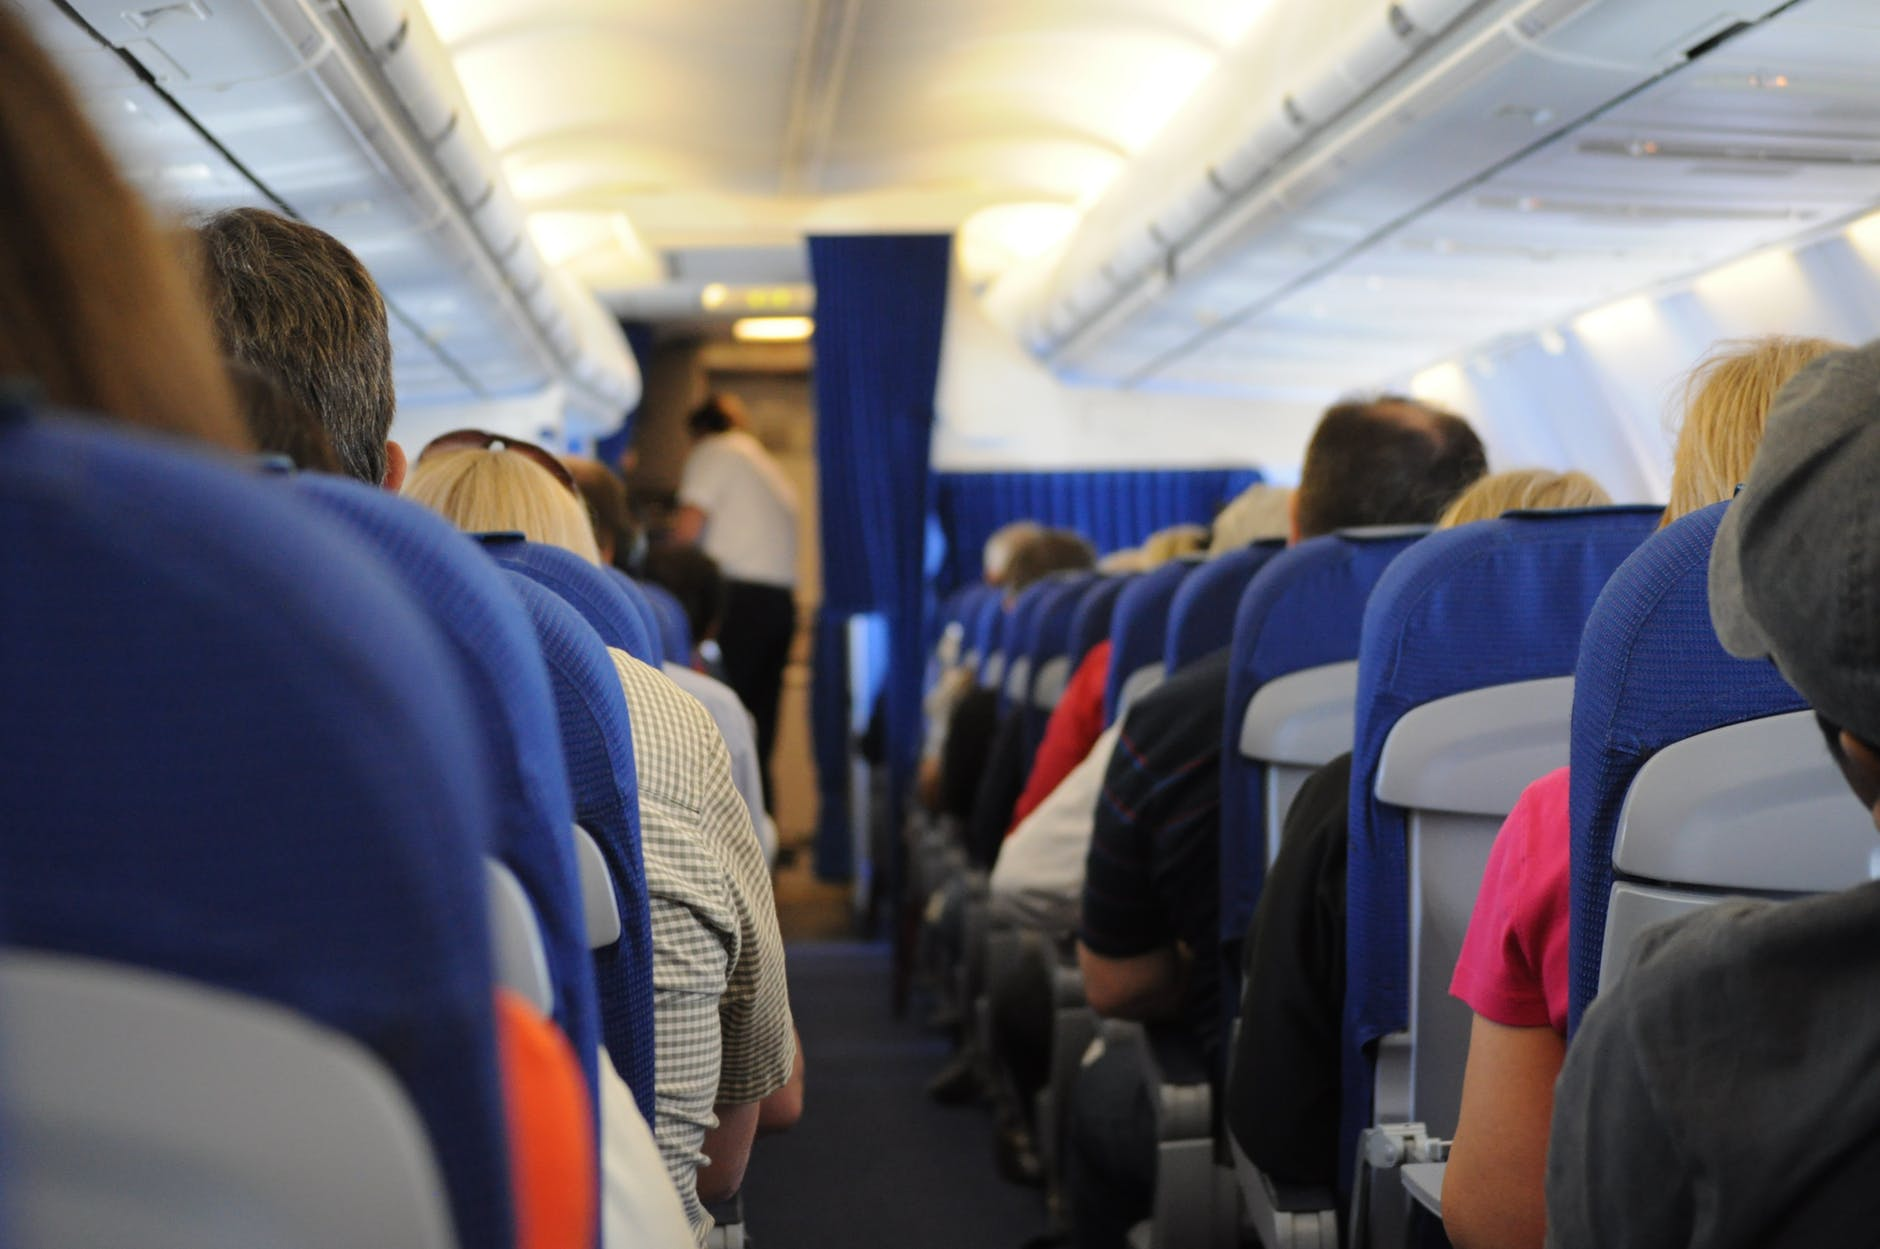 Important Things You Should Never Do on an Airplane in 2020